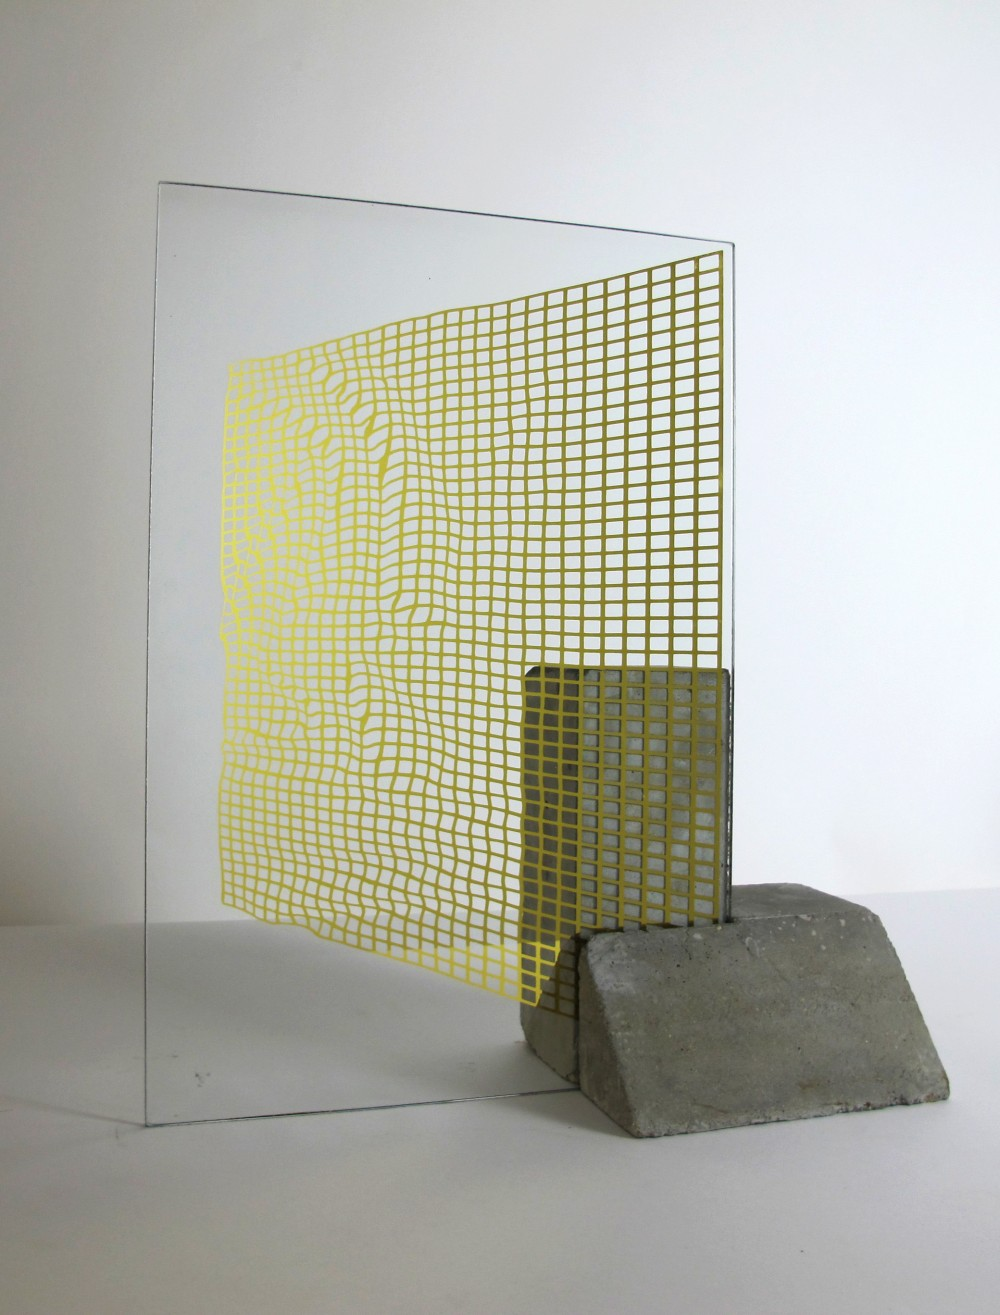 Samuel Padfield 'Rippled grid study' 2018